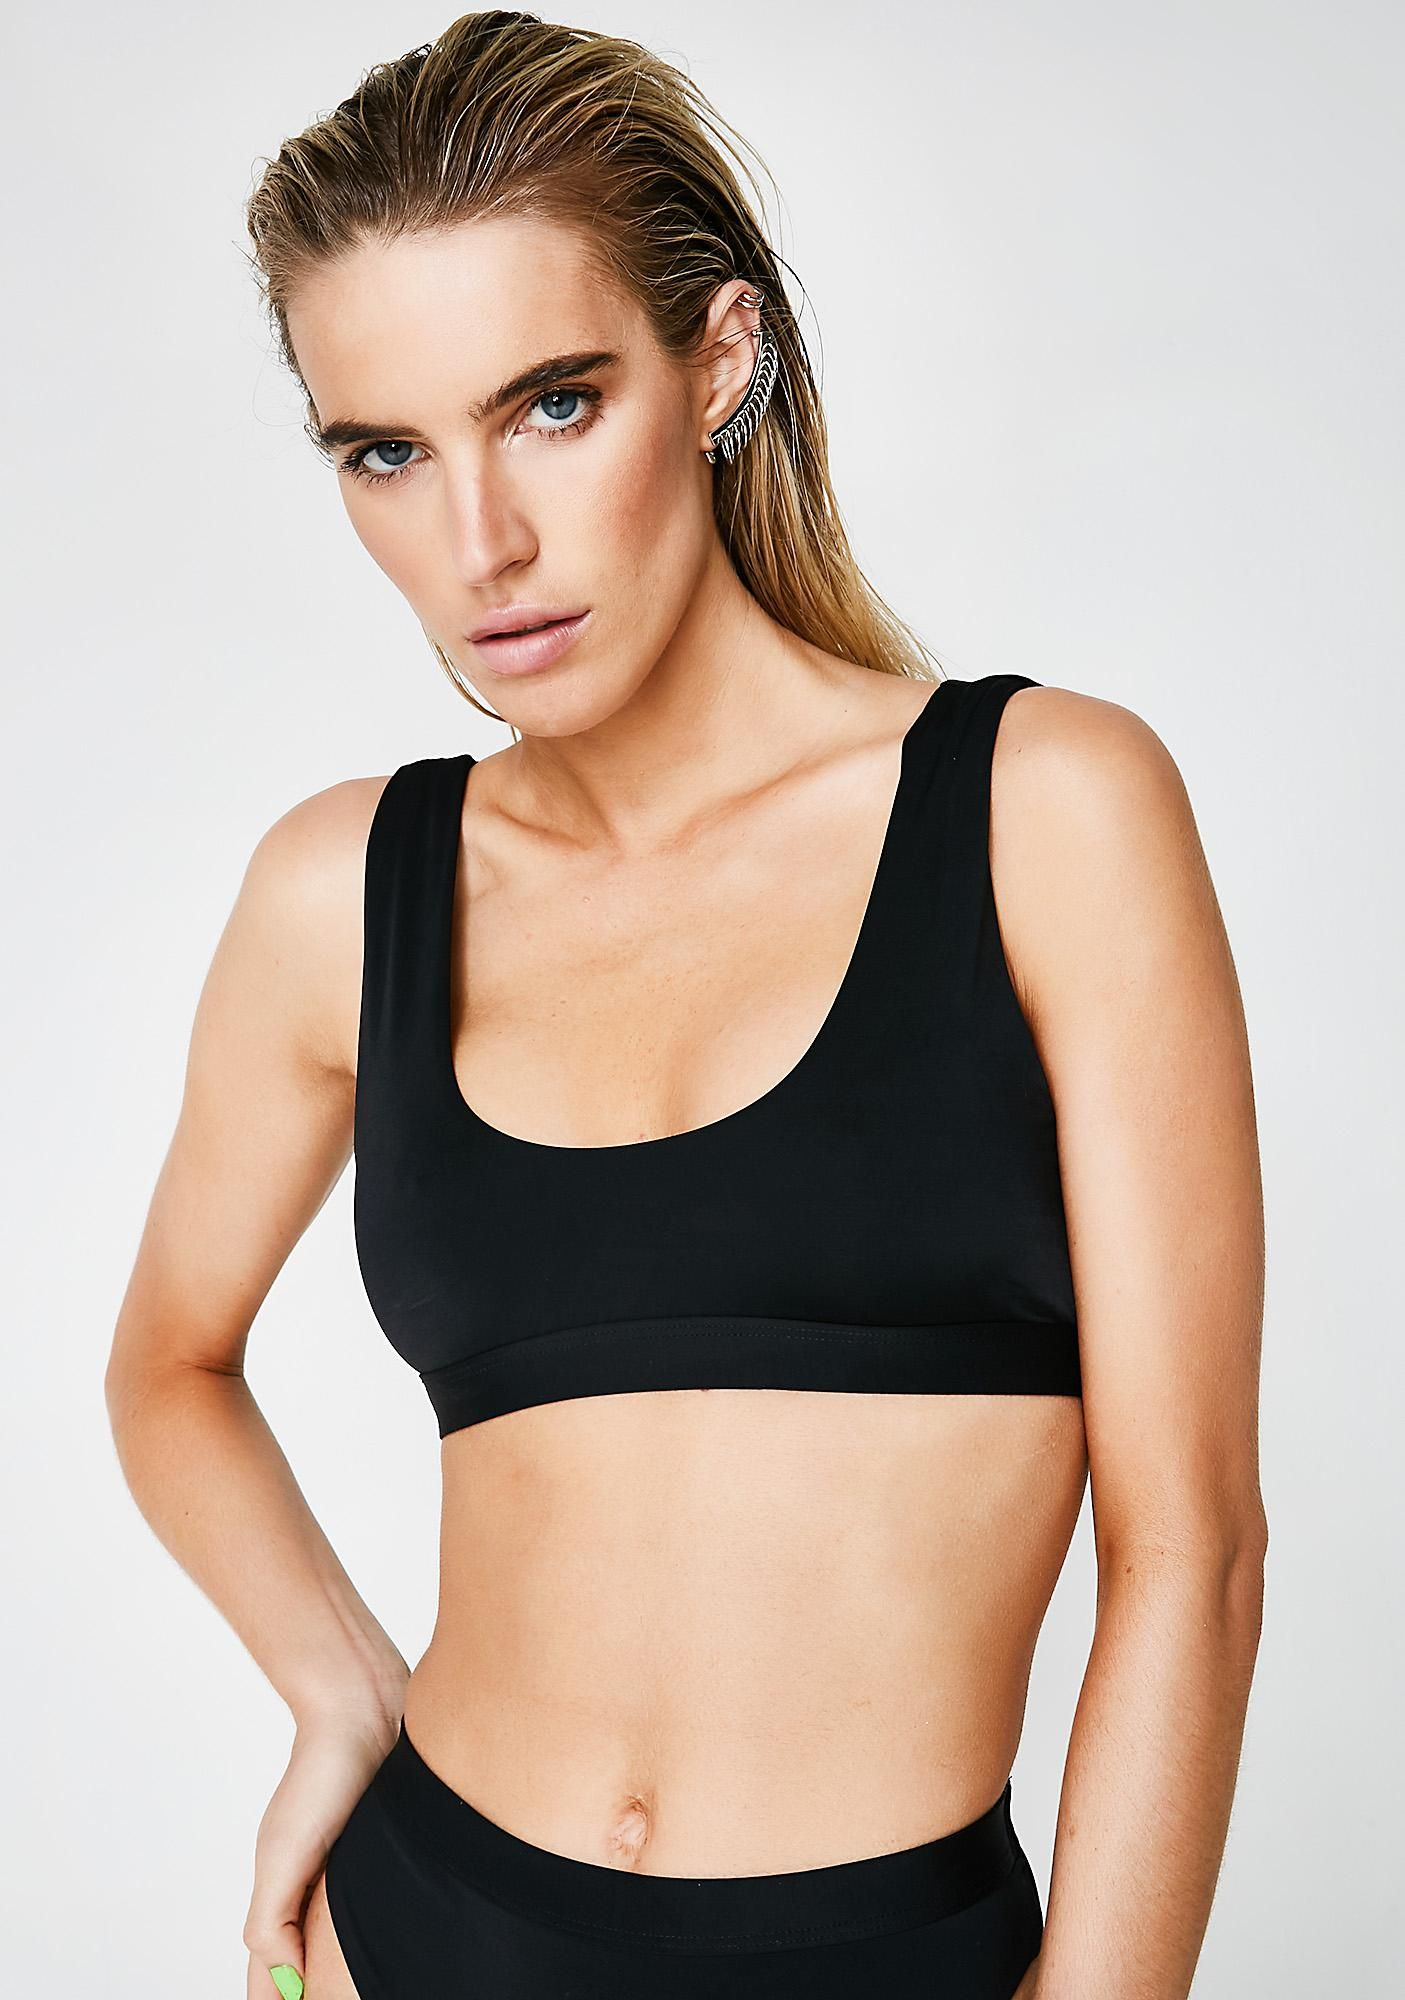 b844df759ae87 Dippin' Daisy's Free, fast shipping on Seamless Sport Bikini Top at Dolls  Kill, an online boutique for punk and rock fashion. Shop graphic tees,  bodysuits, ...